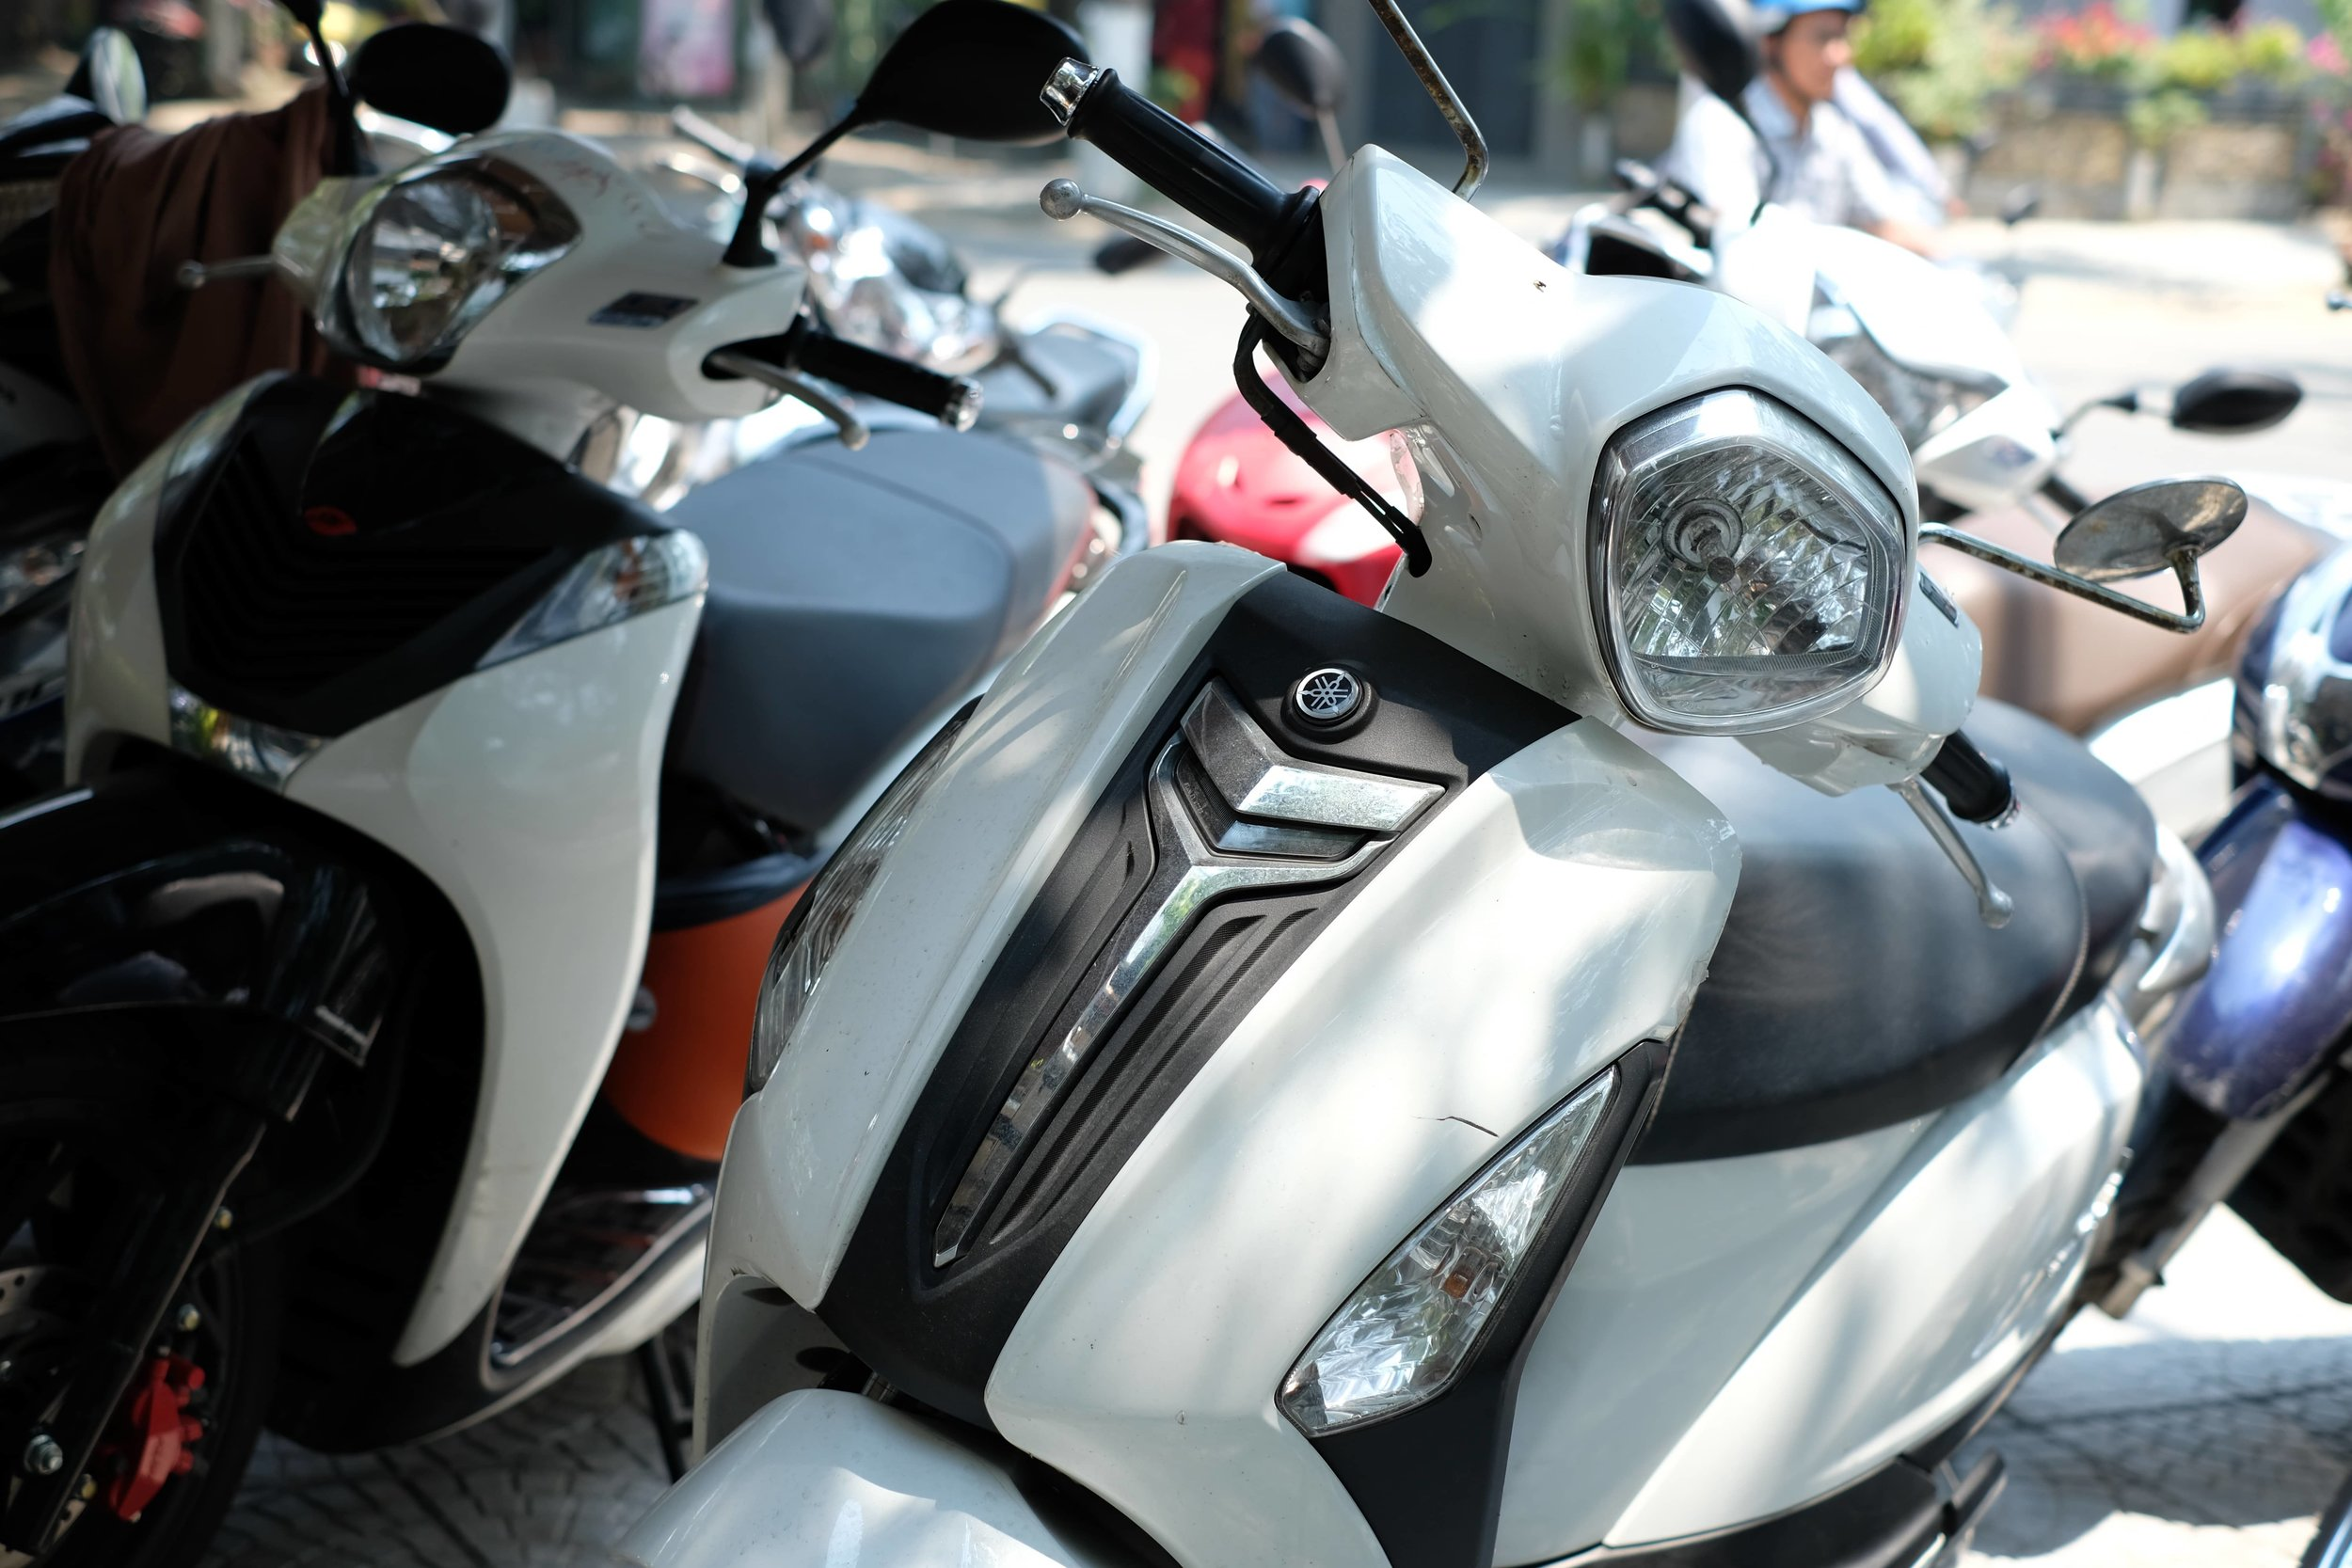 Rent a Motorbike -  The most popular and cheapest option is to rent a moped. You can rent these in either city for $5/day.